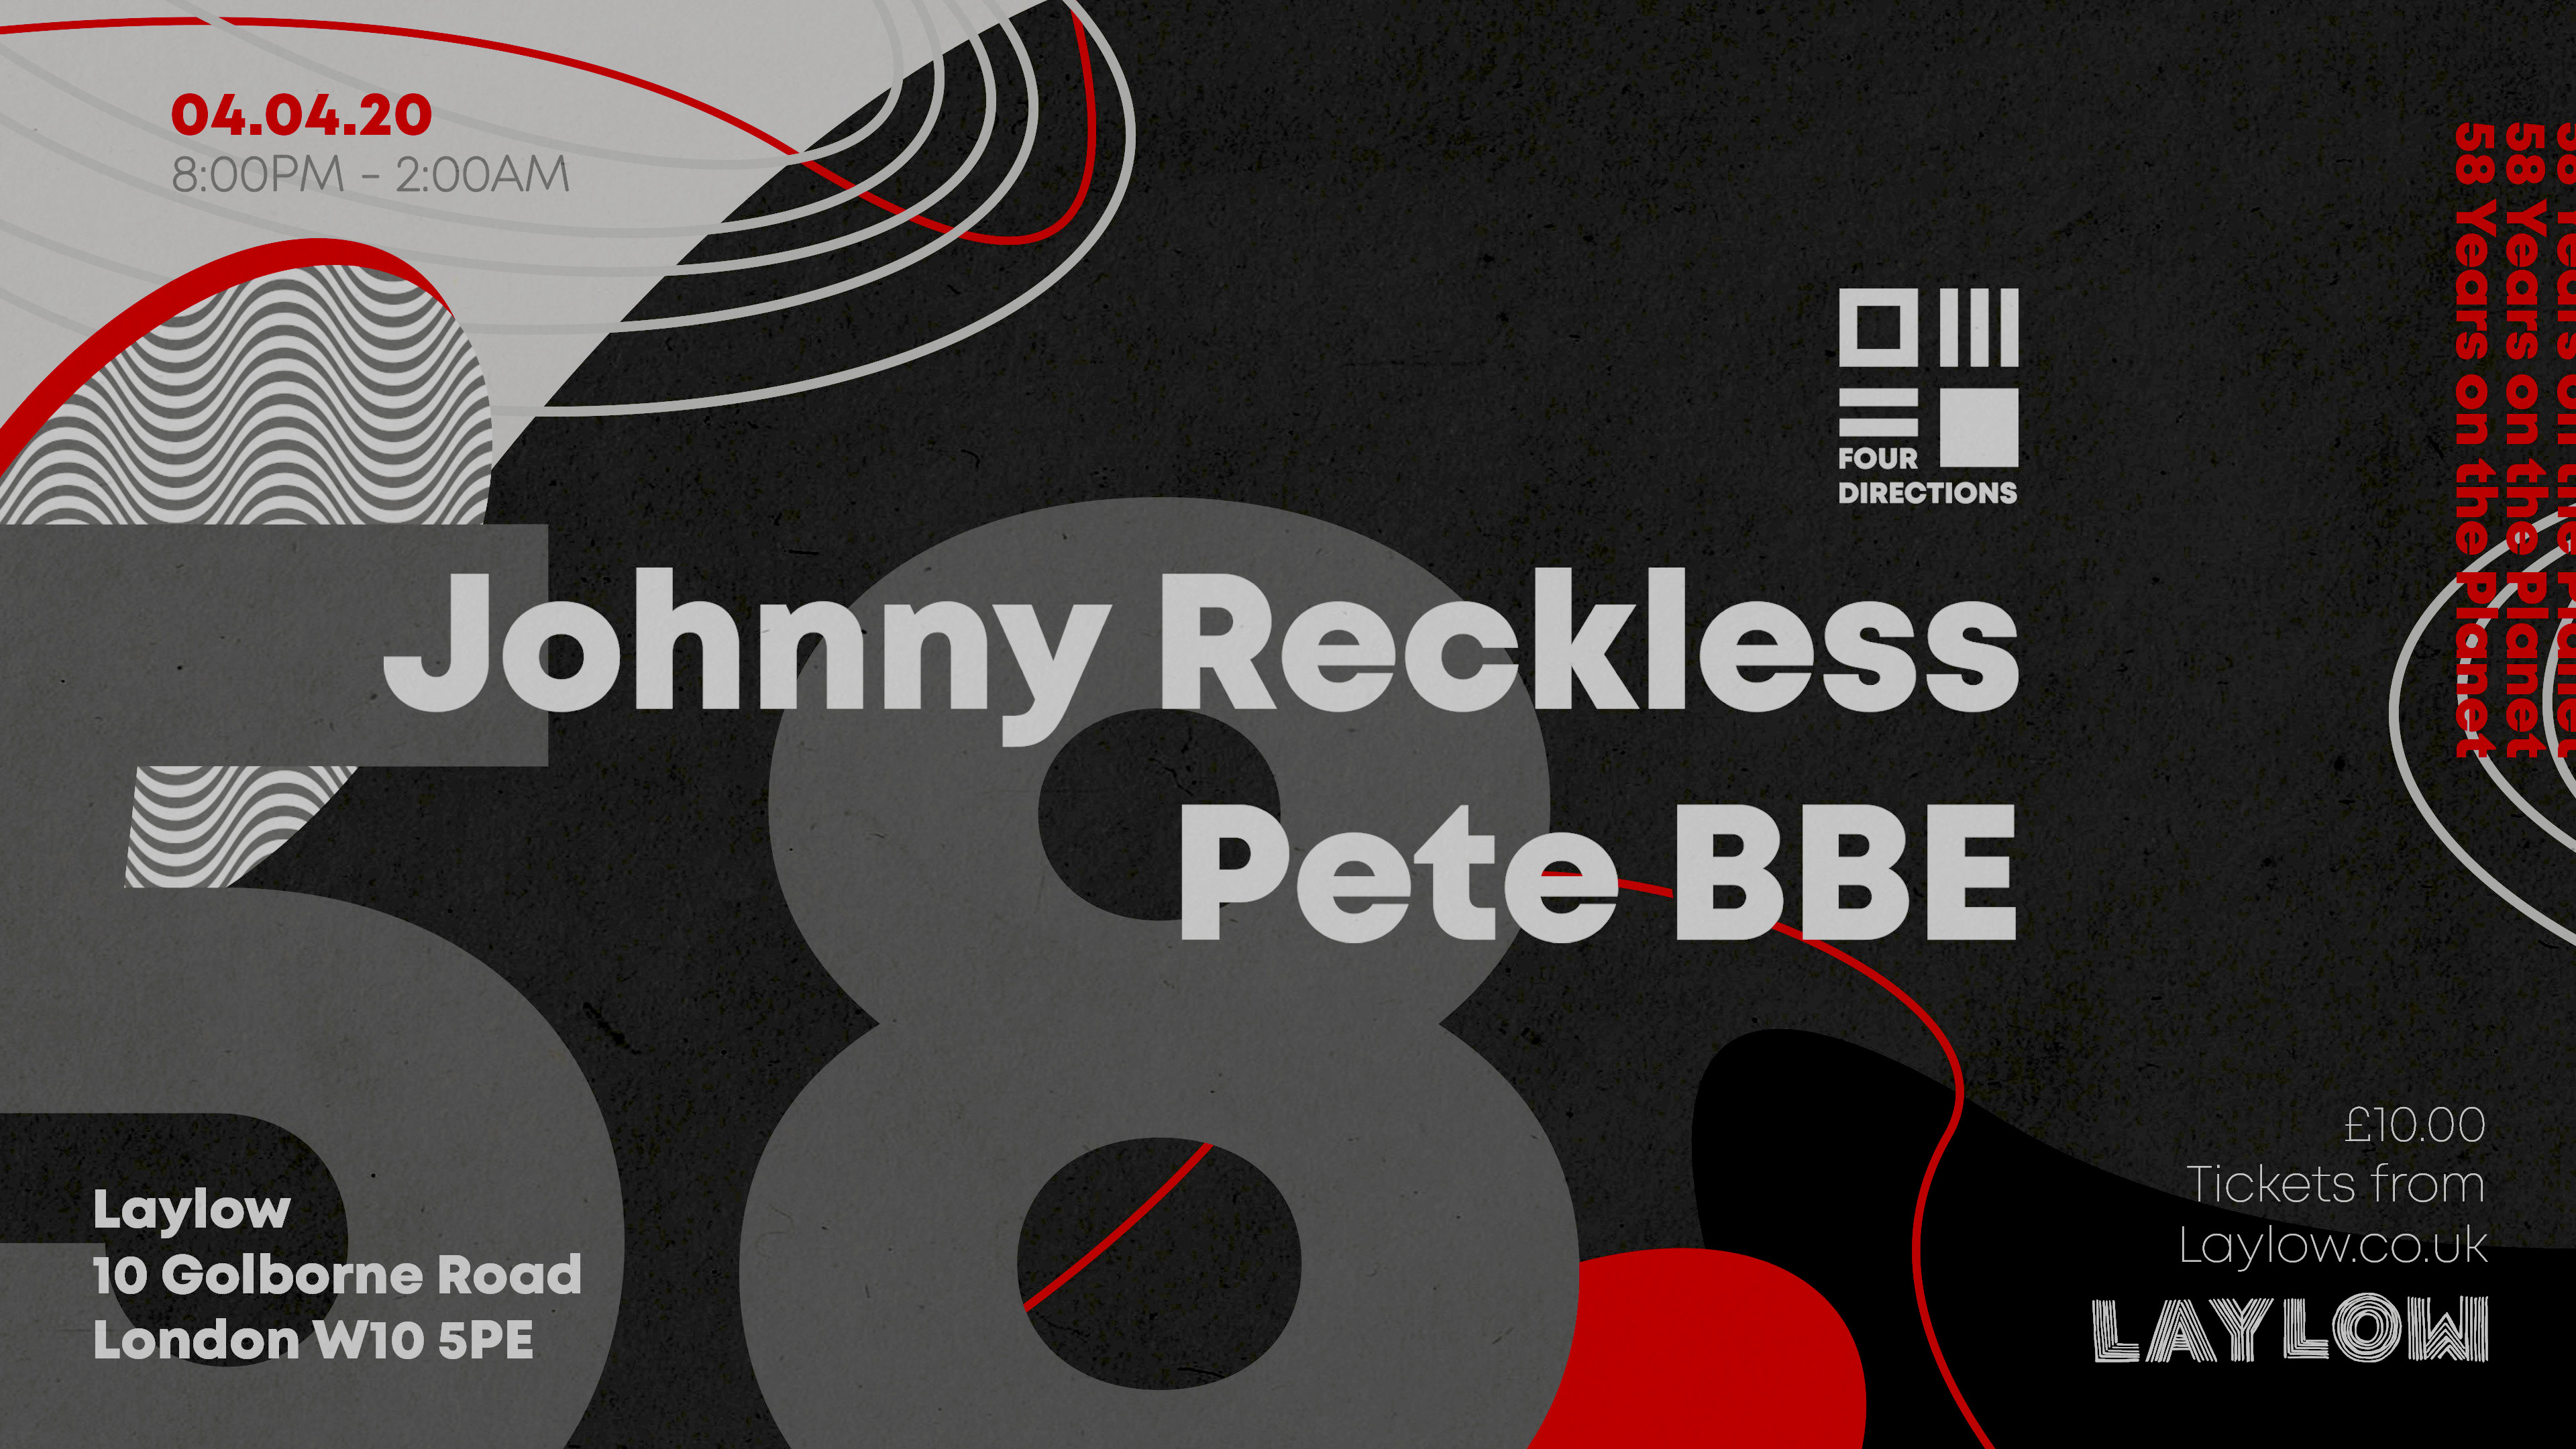 Johnny Reckless & Pete BBE